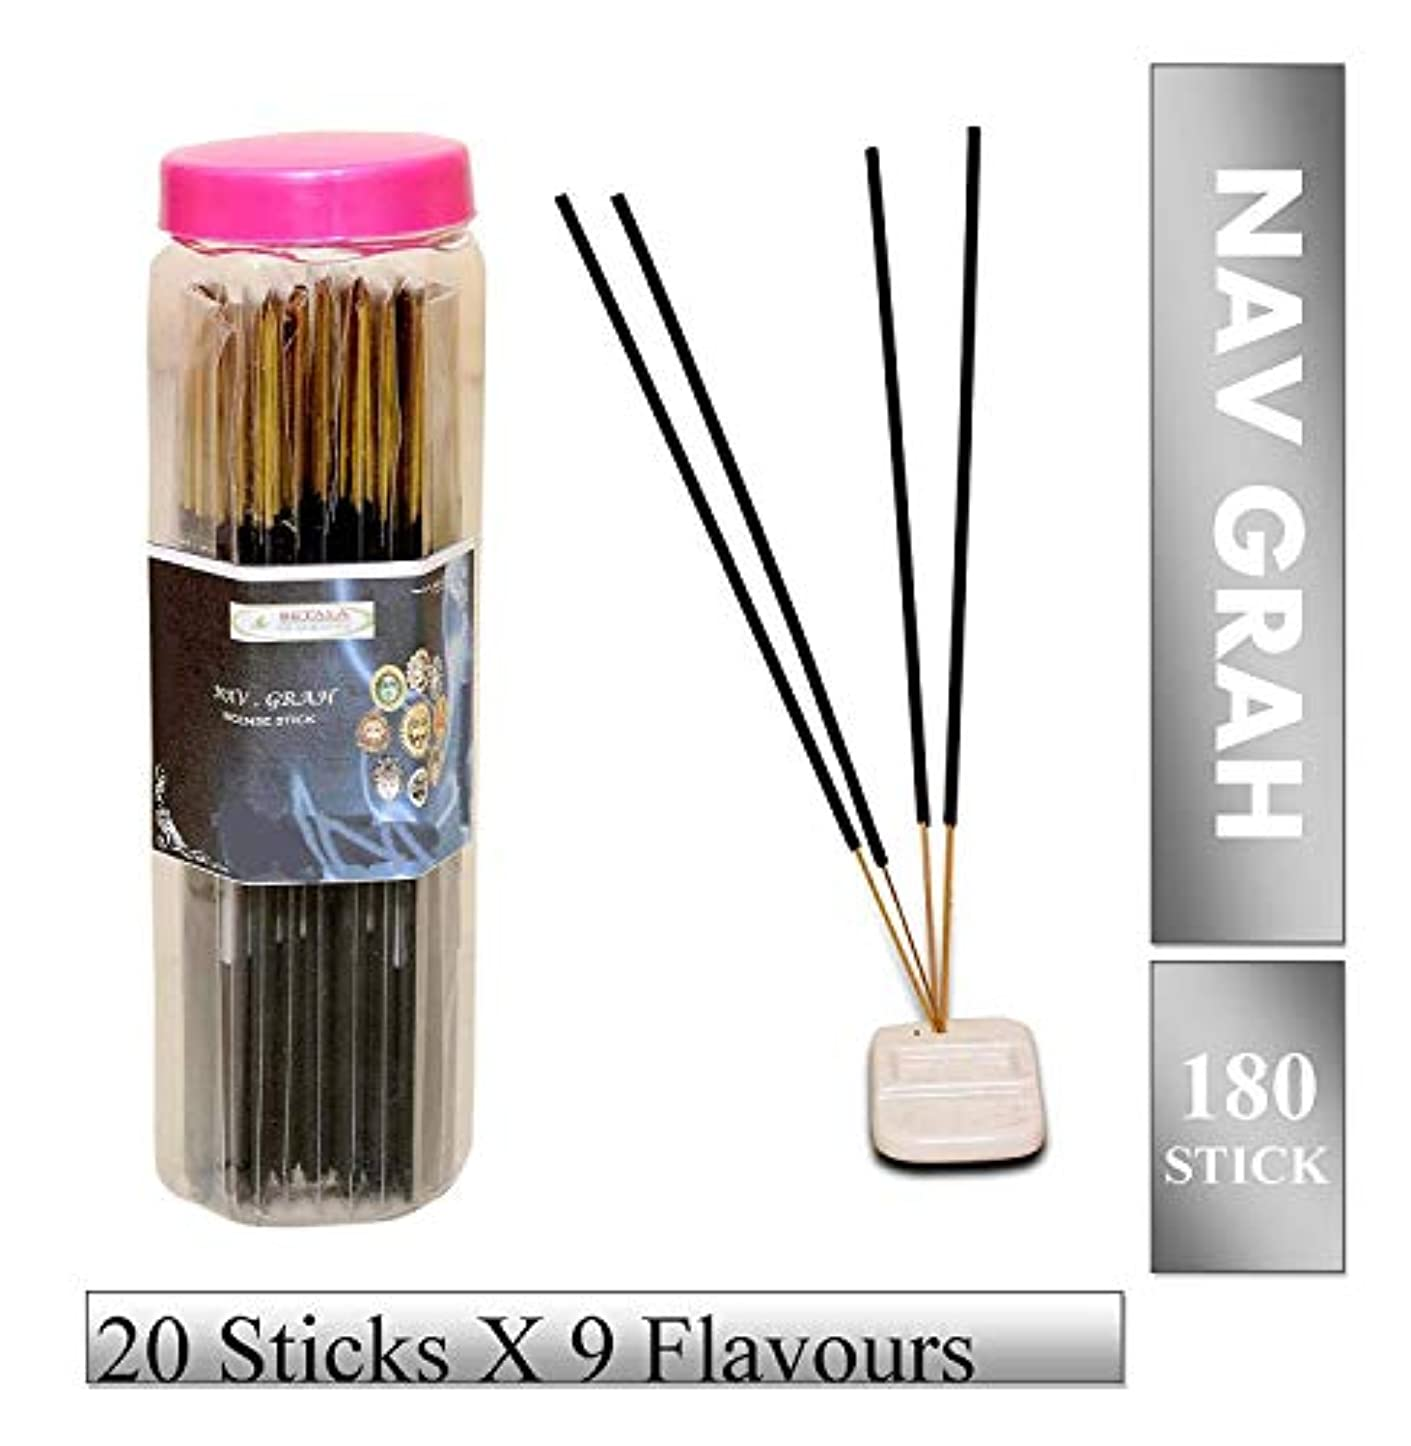 しがみつく喉が渇いた空中BETALA MARKETING Combo Of Navgrah 9 In 1 Agarbatti Sticks With Agarbatti Box - Pack 0f 9 Flavours (180 Sticks)